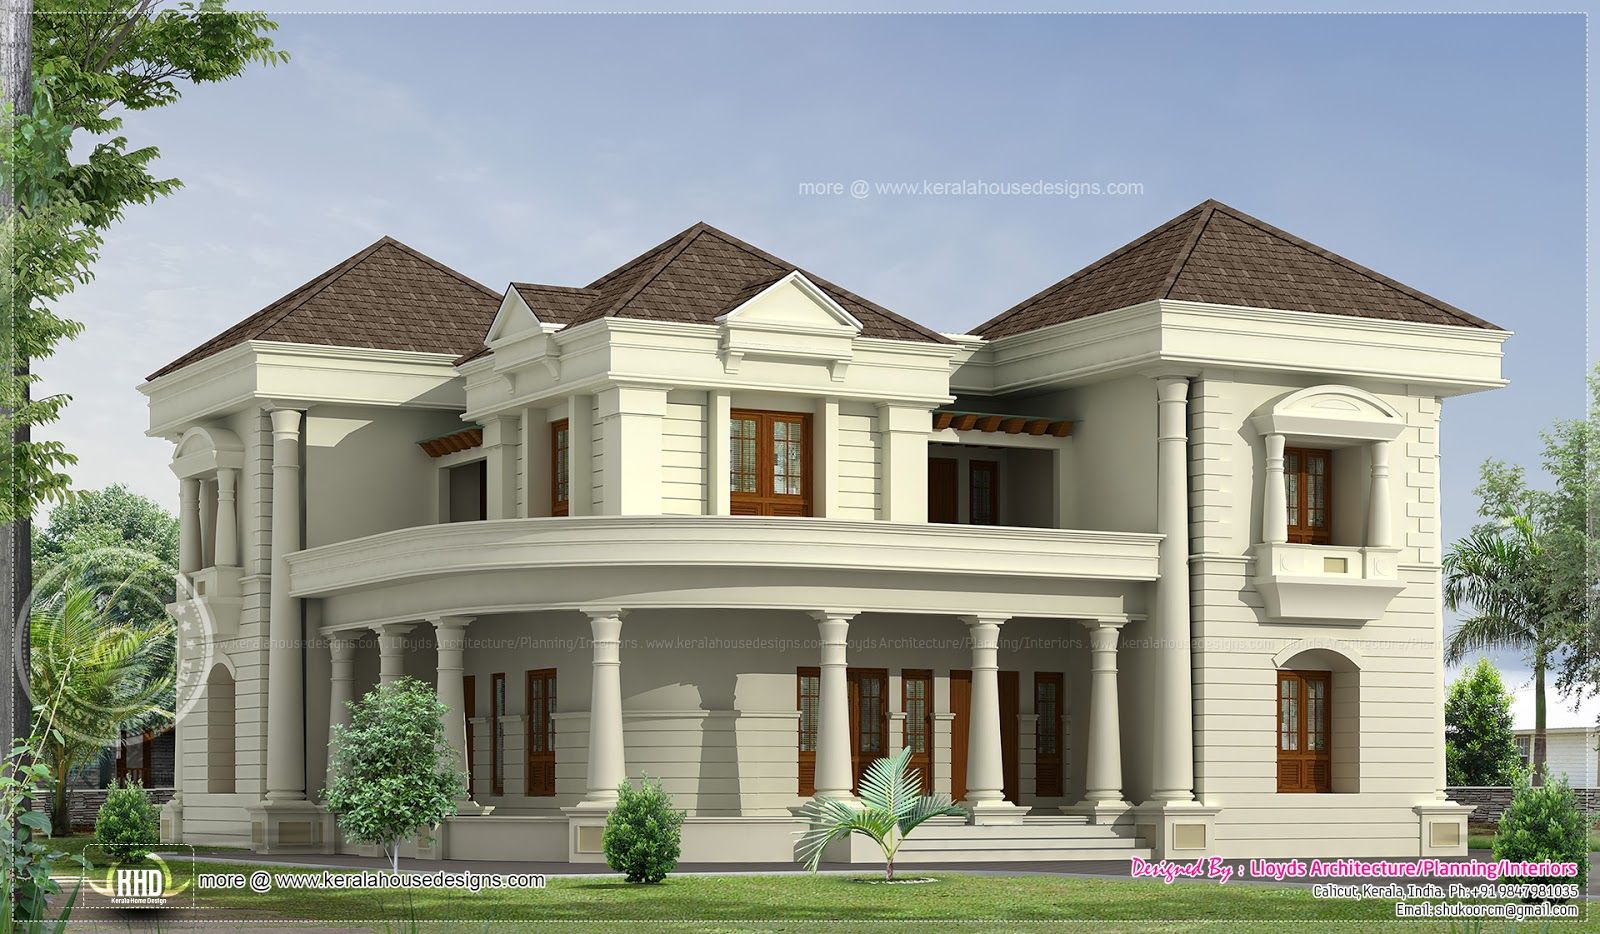 Modern bungalows bedroom luxurious bungalow floor plan for Top 10 house design